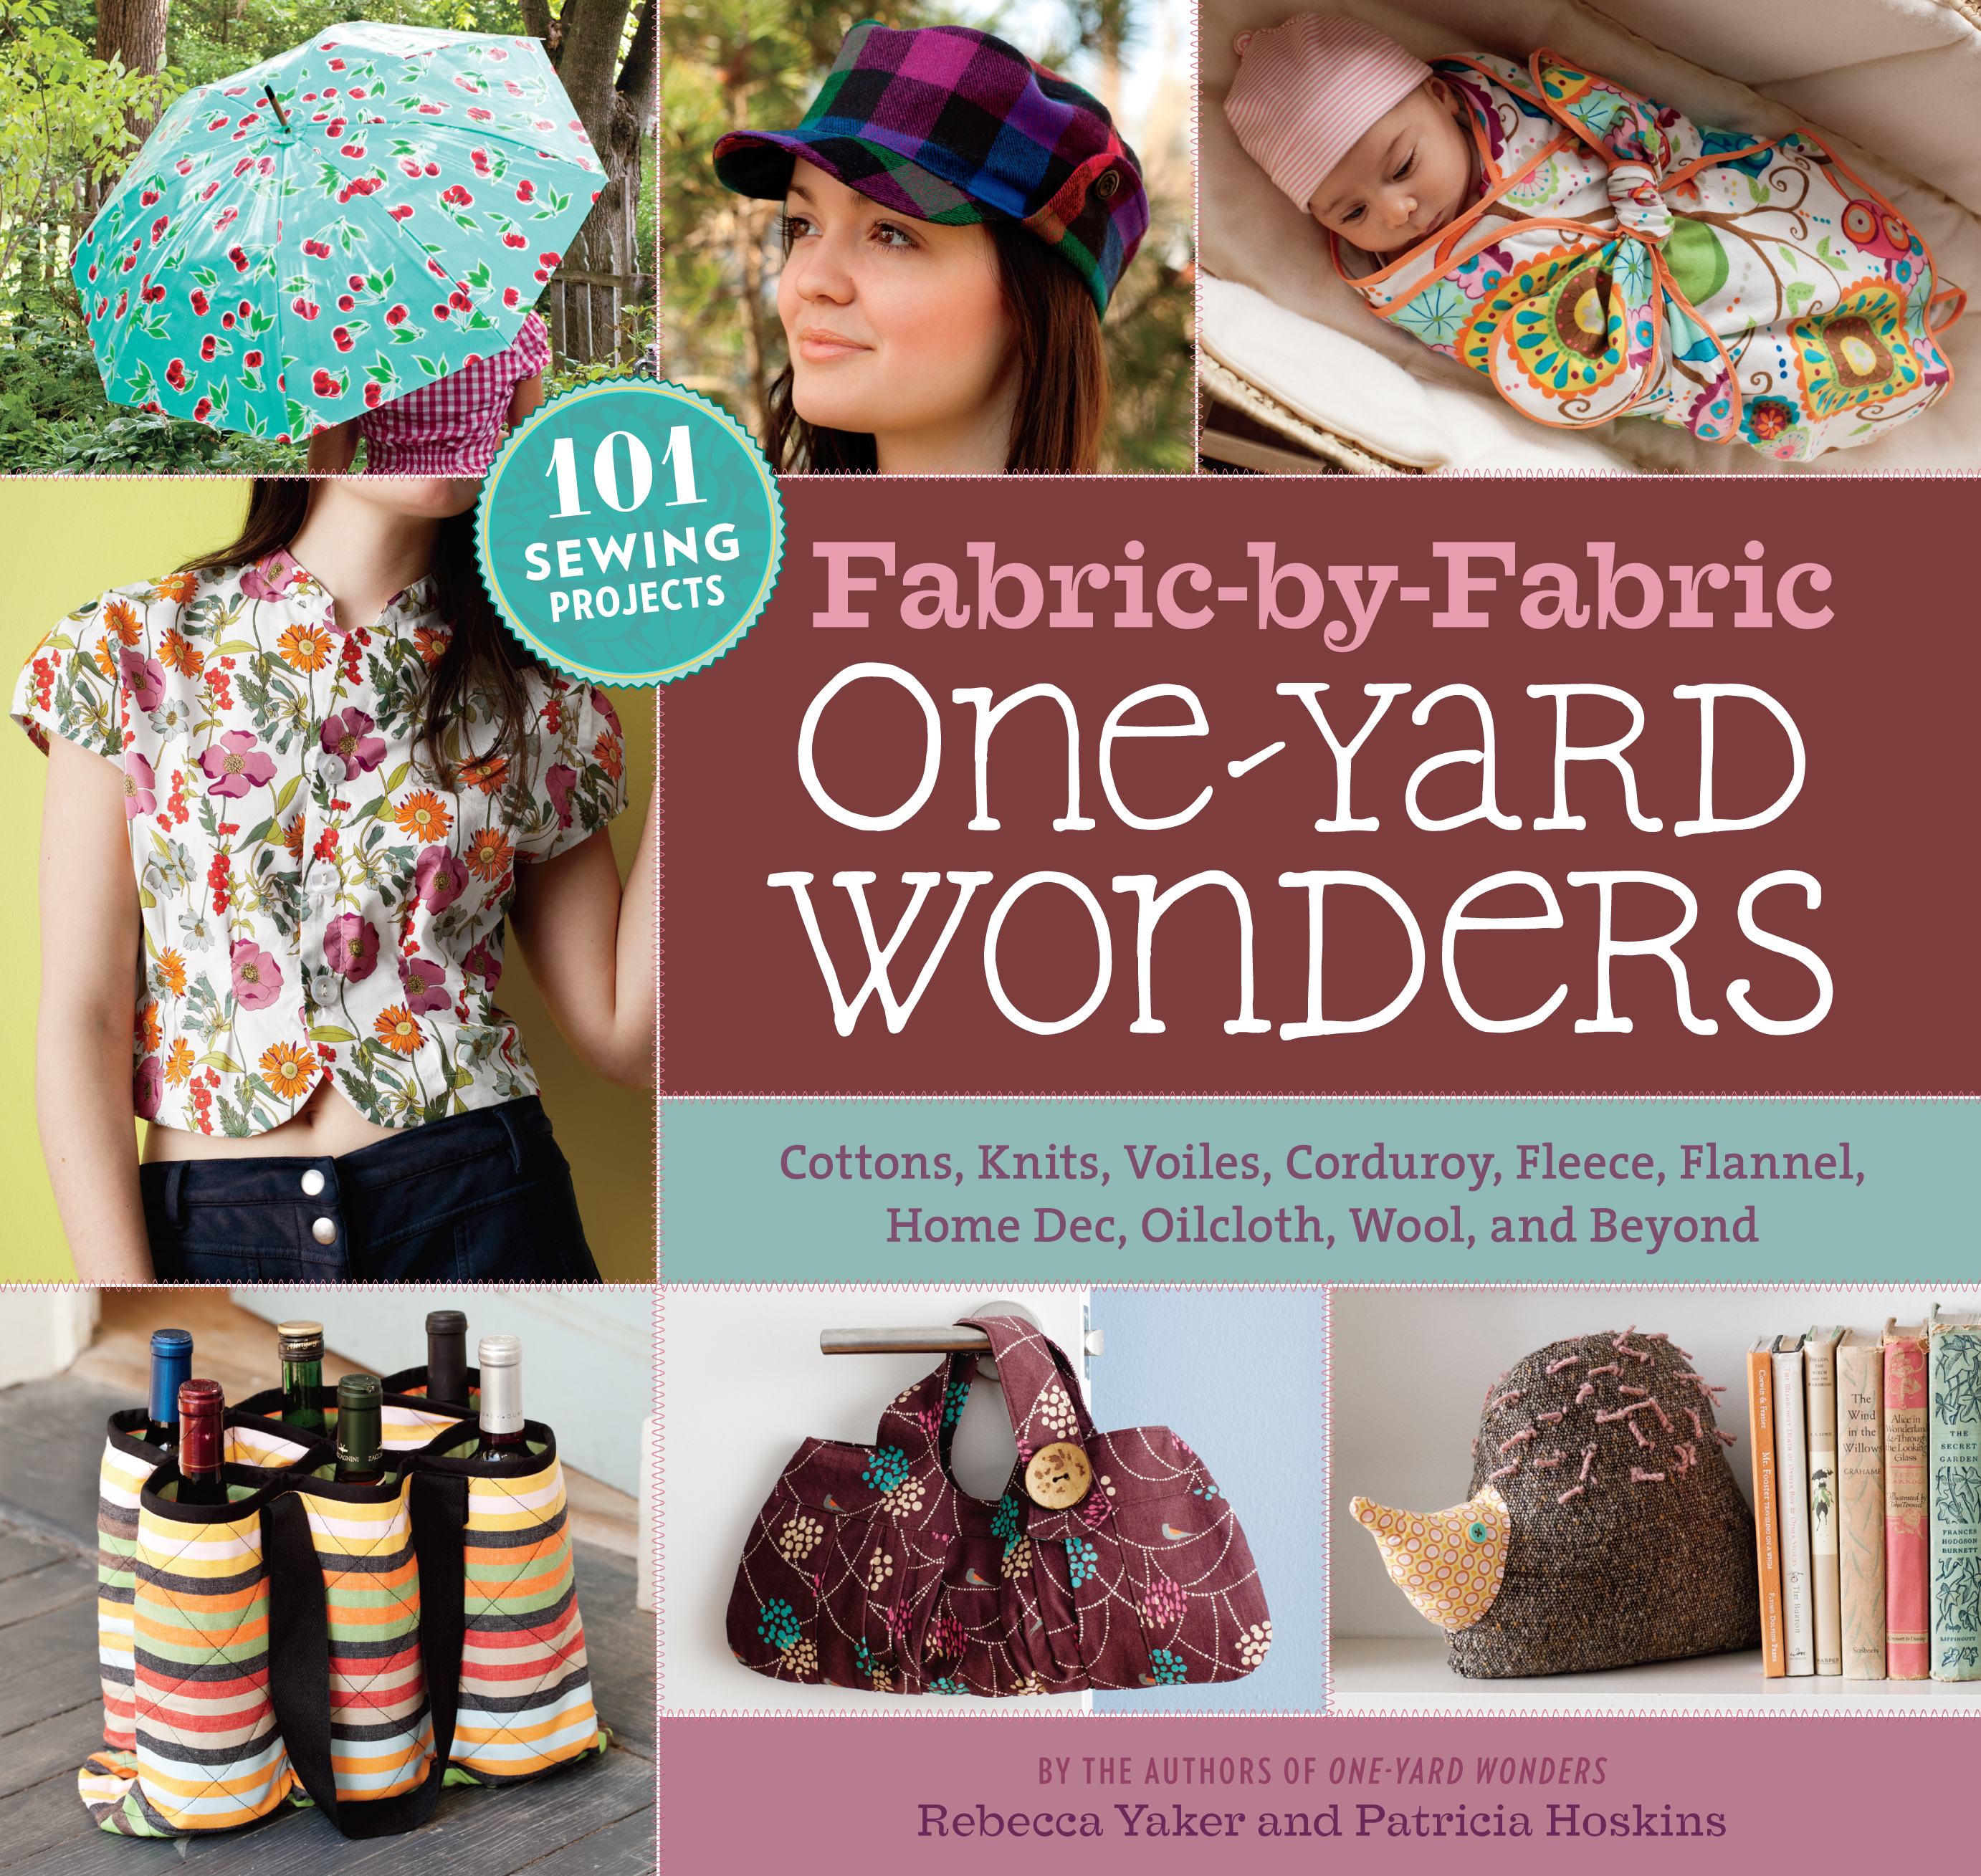 Fabric-by-Fabric One-Yard Wonders 101 Sewing Projects Using Cottons, Knits, Voiles, Corduroy, Fleece, Flannel, Home Dec, Oilcloth, Wool, and Beyond  - Patricia Hoskins